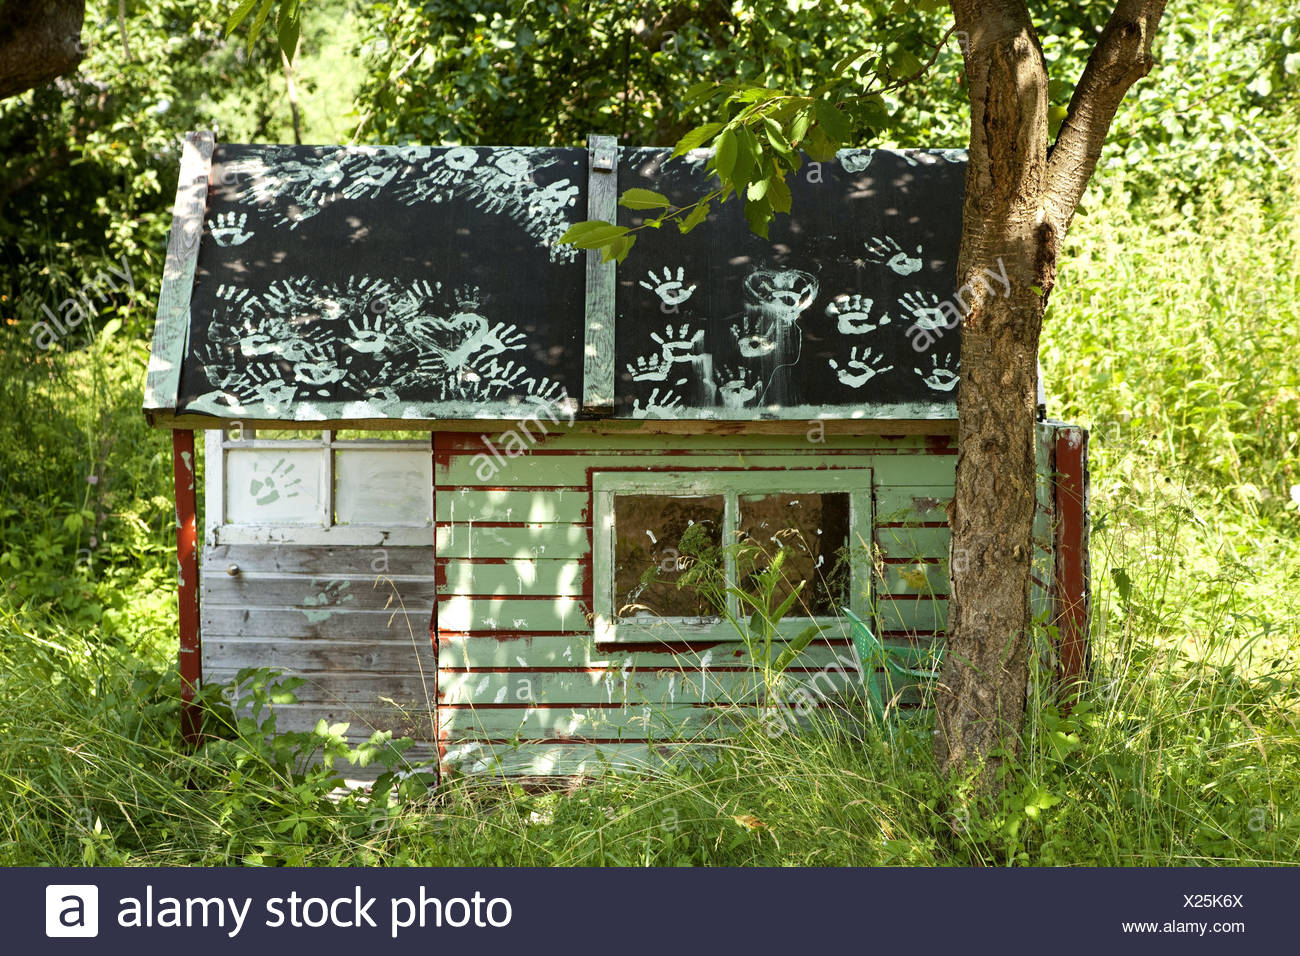 garden shed stockfotos garden shed bilder alamy. Black Bedroom Furniture Sets. Home Design Ideas